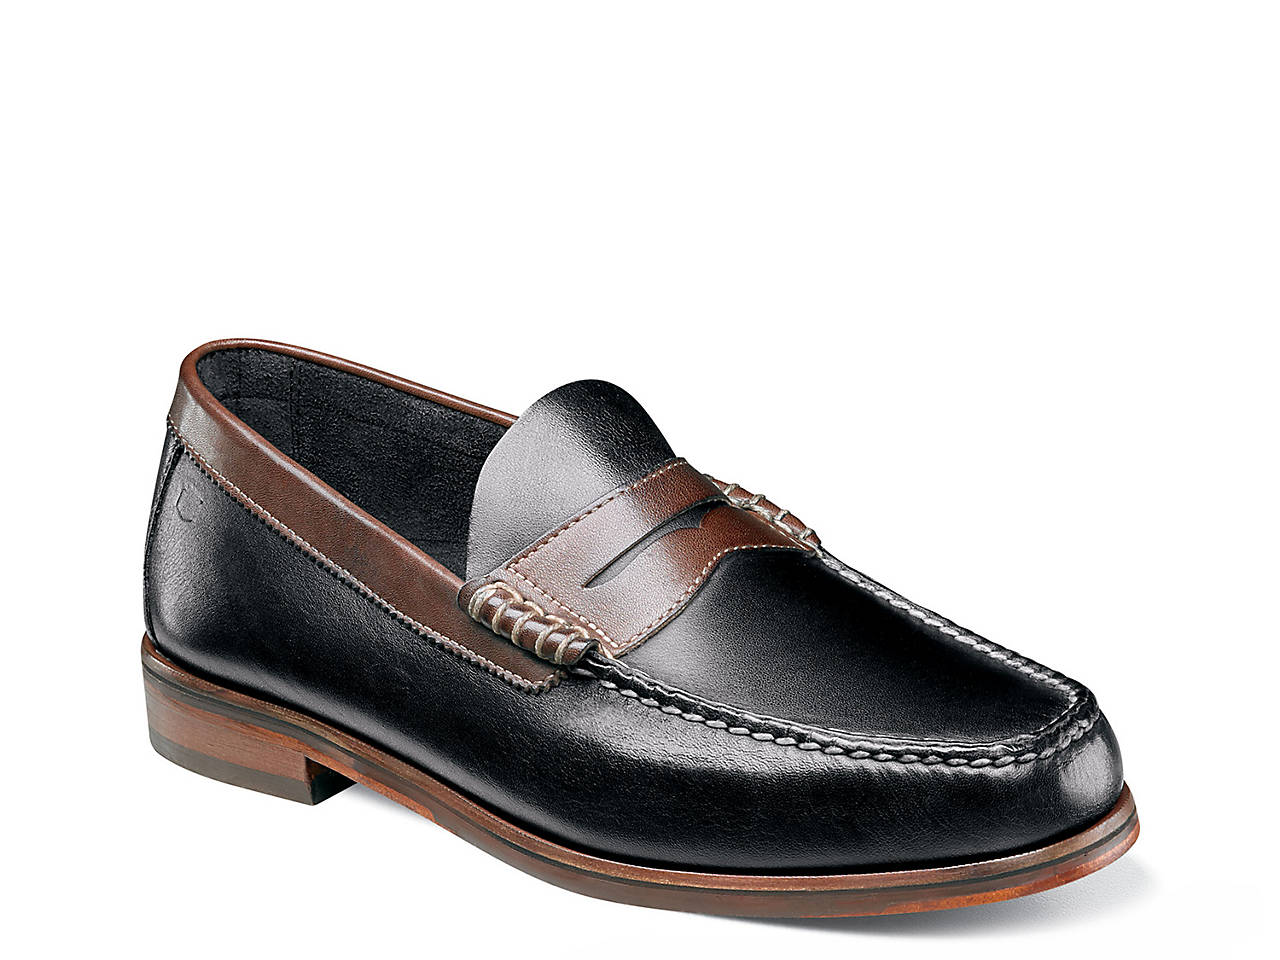 Florsheim Heads Up Penny Loafer (Black/Brown Smooth) Mens Slip-on Dress Shoes Low Shipping Fee Sale Online Purchase Buy Cheap Browse Clearance Manchester xAIvvvJrx8